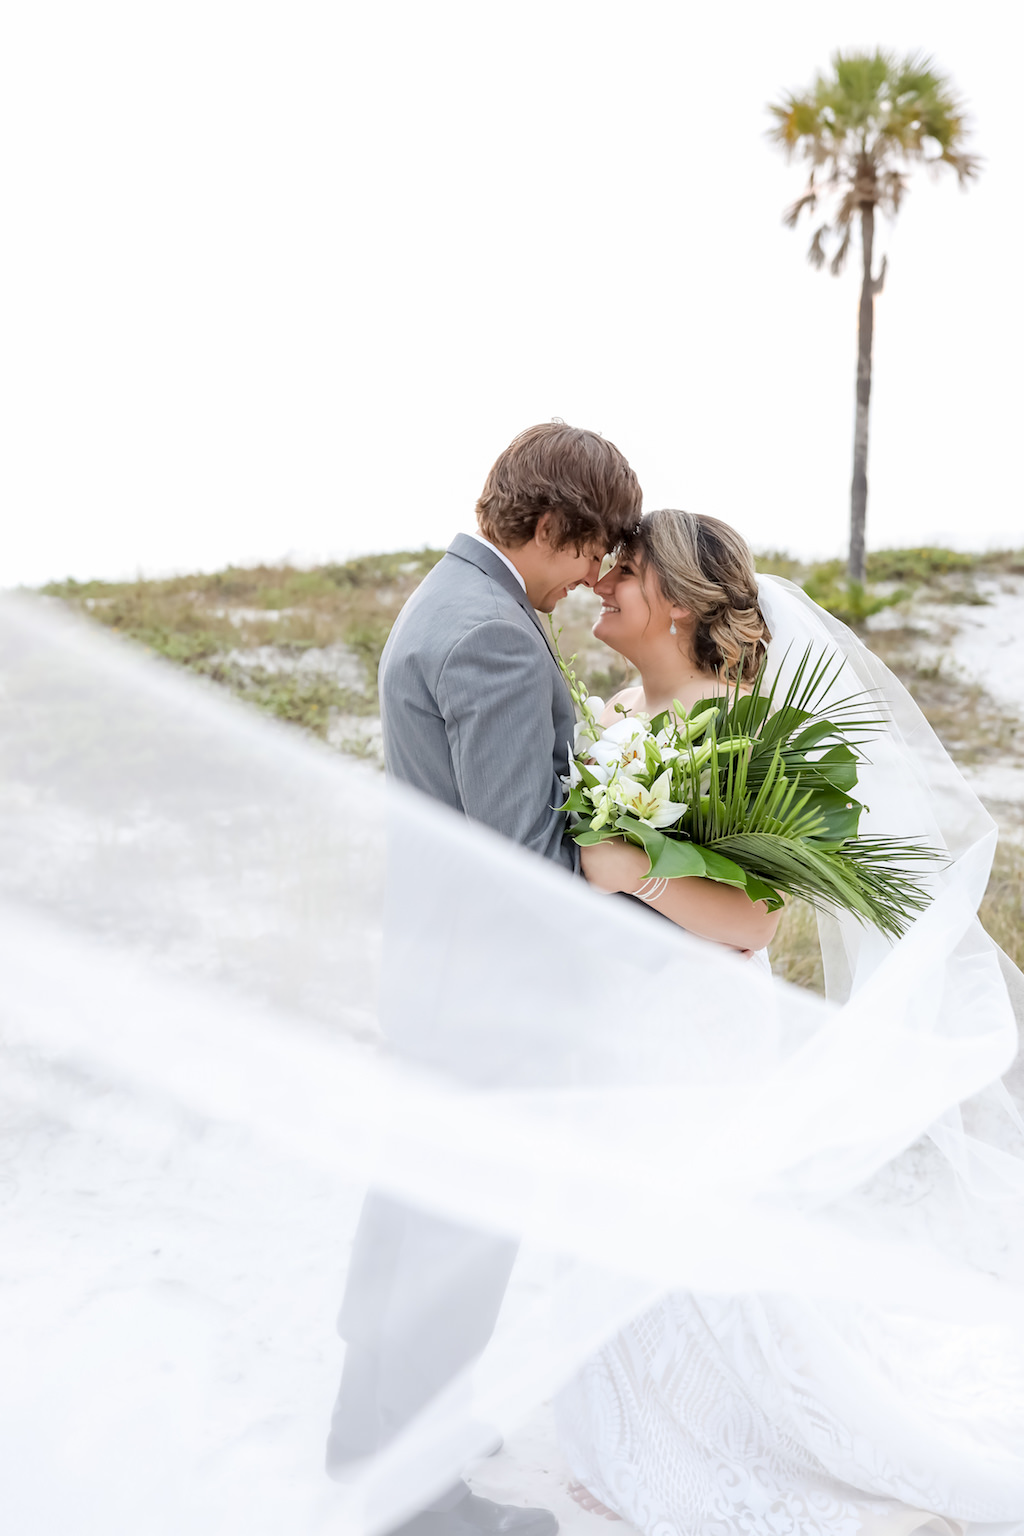 Clearwater Beach Bride and Groom Creative Photo with Cathedral Length Veil Blowing in Wind   Tampa Bay Wedding Photographer Lifelong Photography Studios